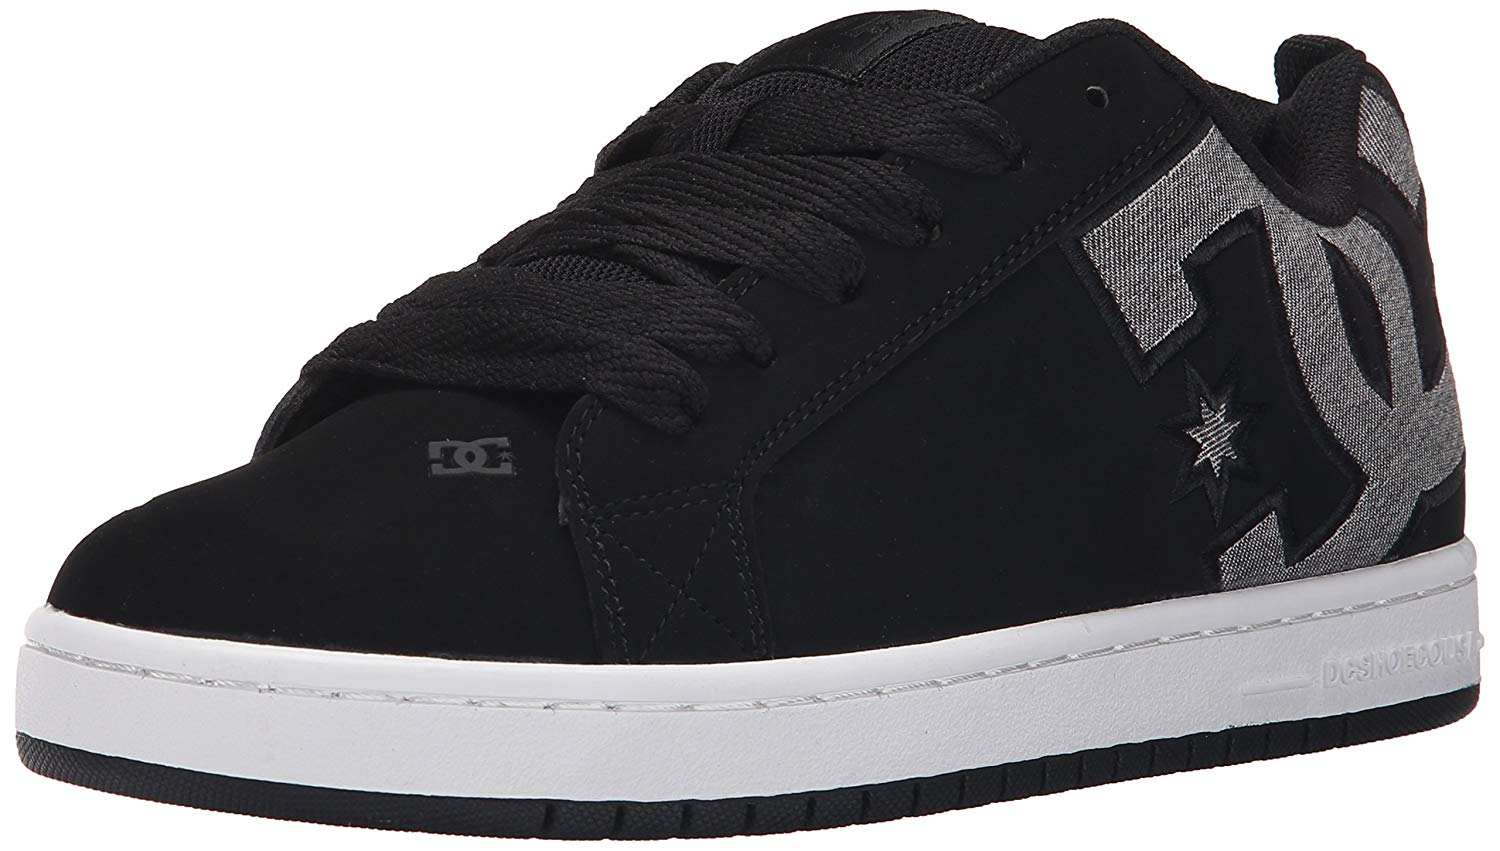 DC Mens Court Graffik S Shoes, Black Dark Used, 7.5D